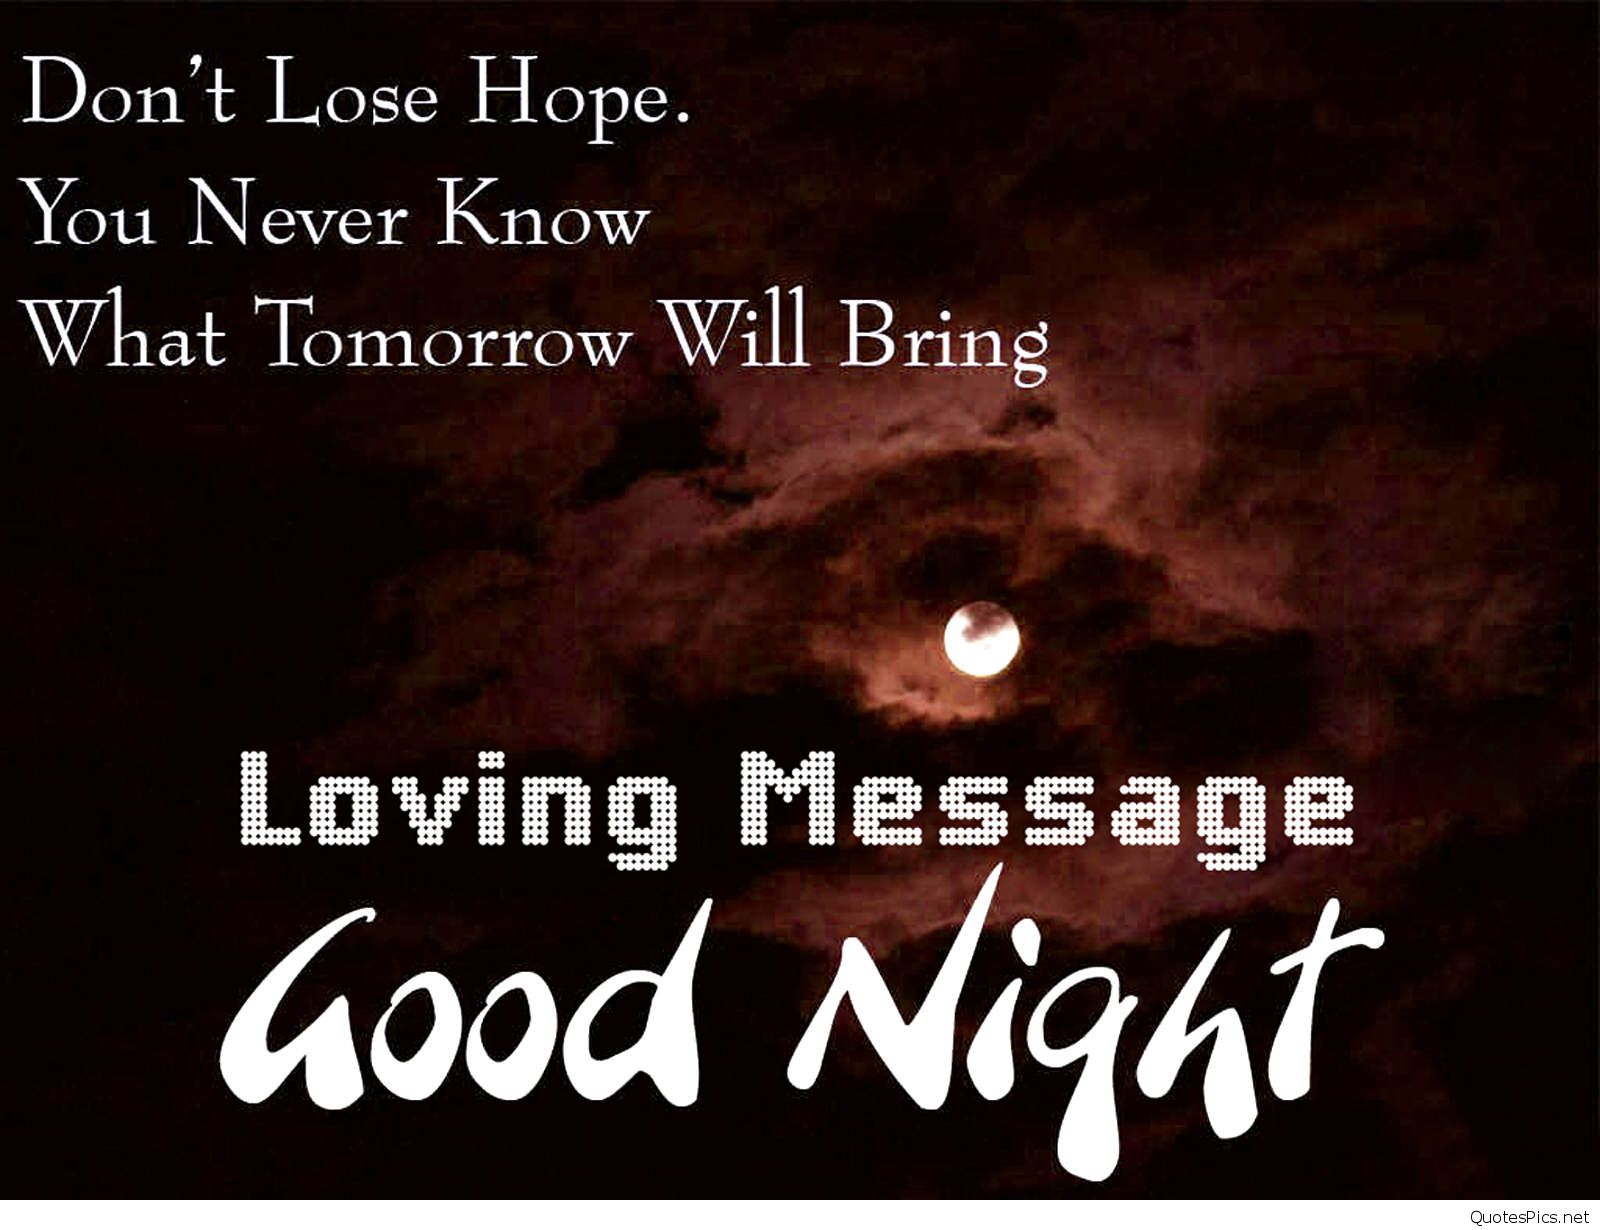 Good Night Message With Love Quotes 1600x1230 Download Hd Wallpaper Wallpapertip